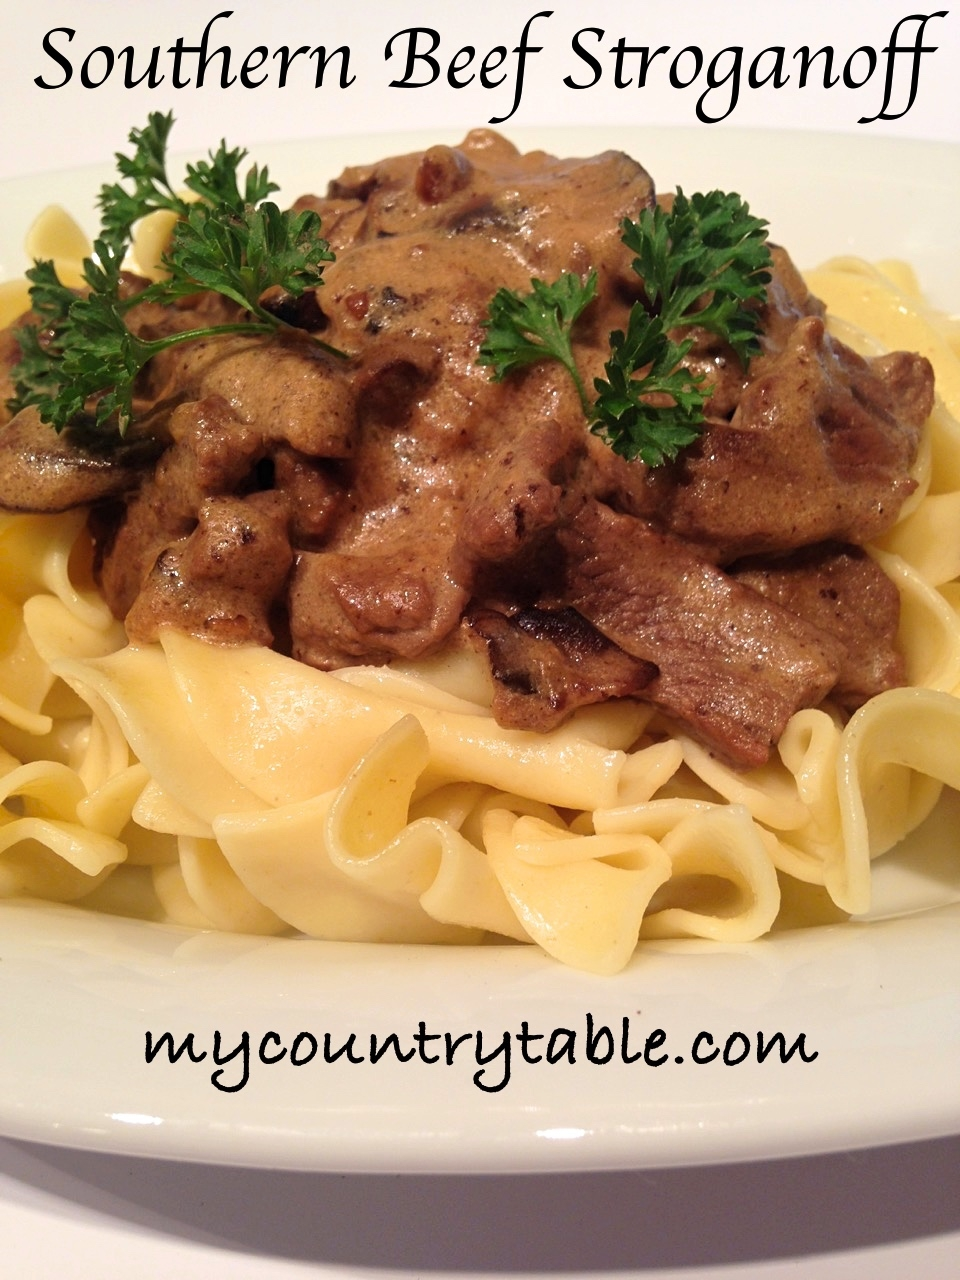 Southern Beef Stroganoff